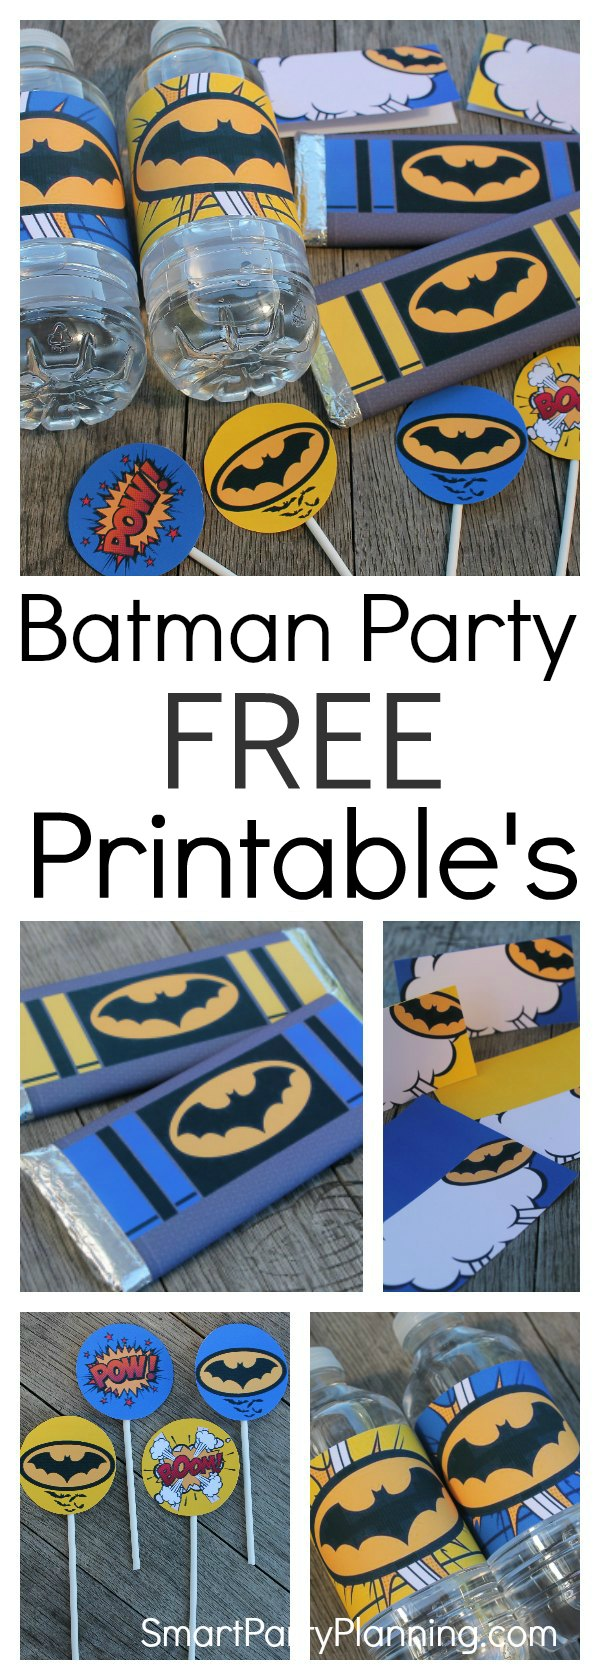 Free Batman printables